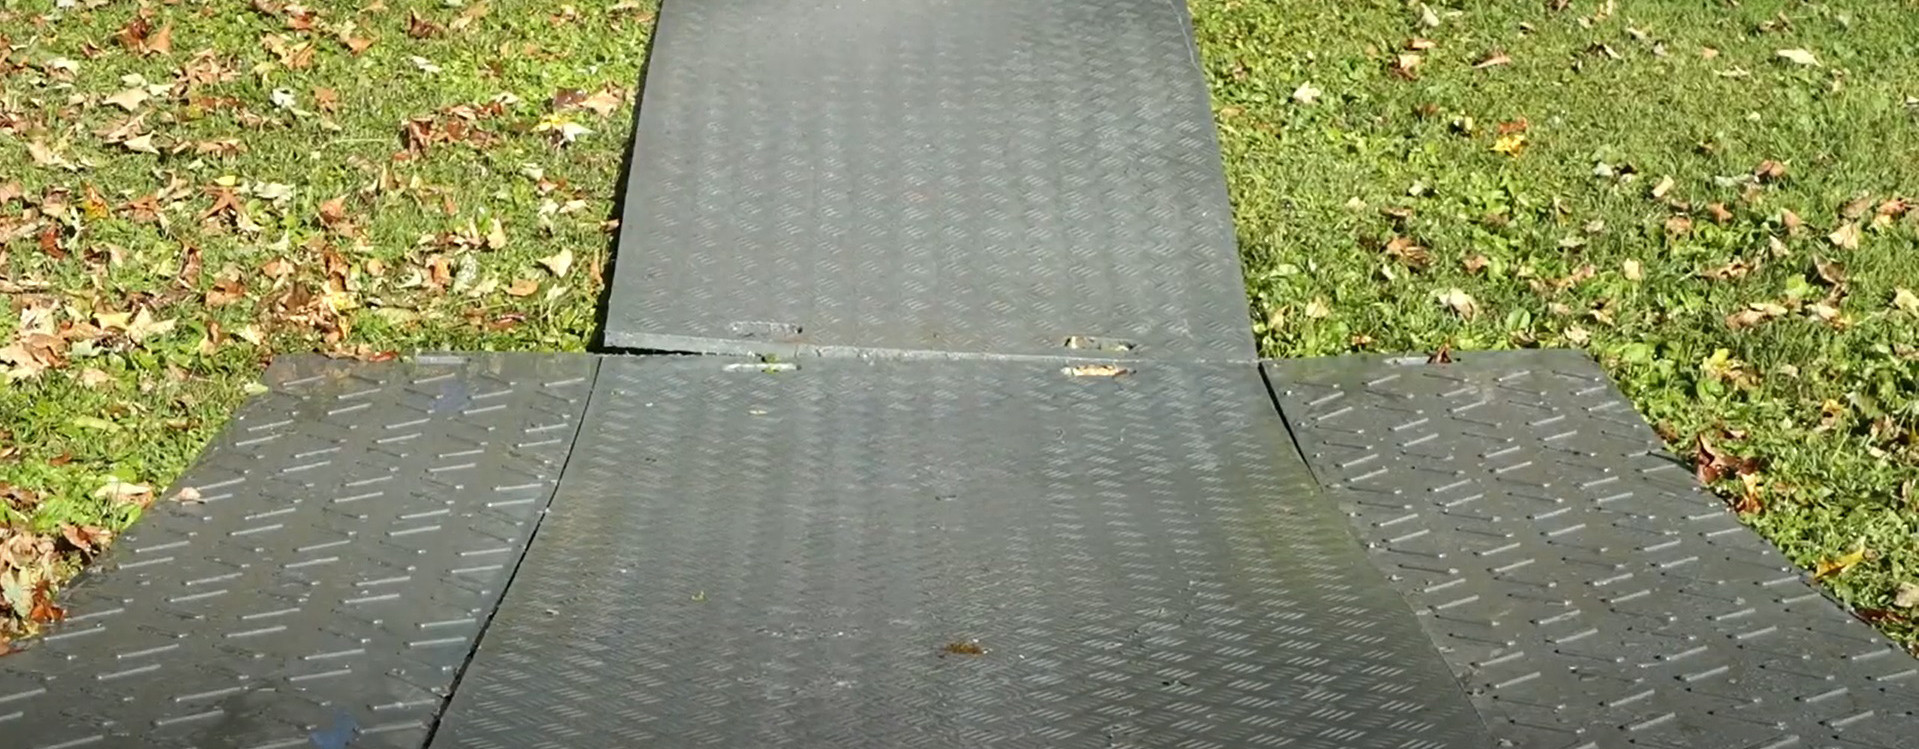 Ground Protection Mats